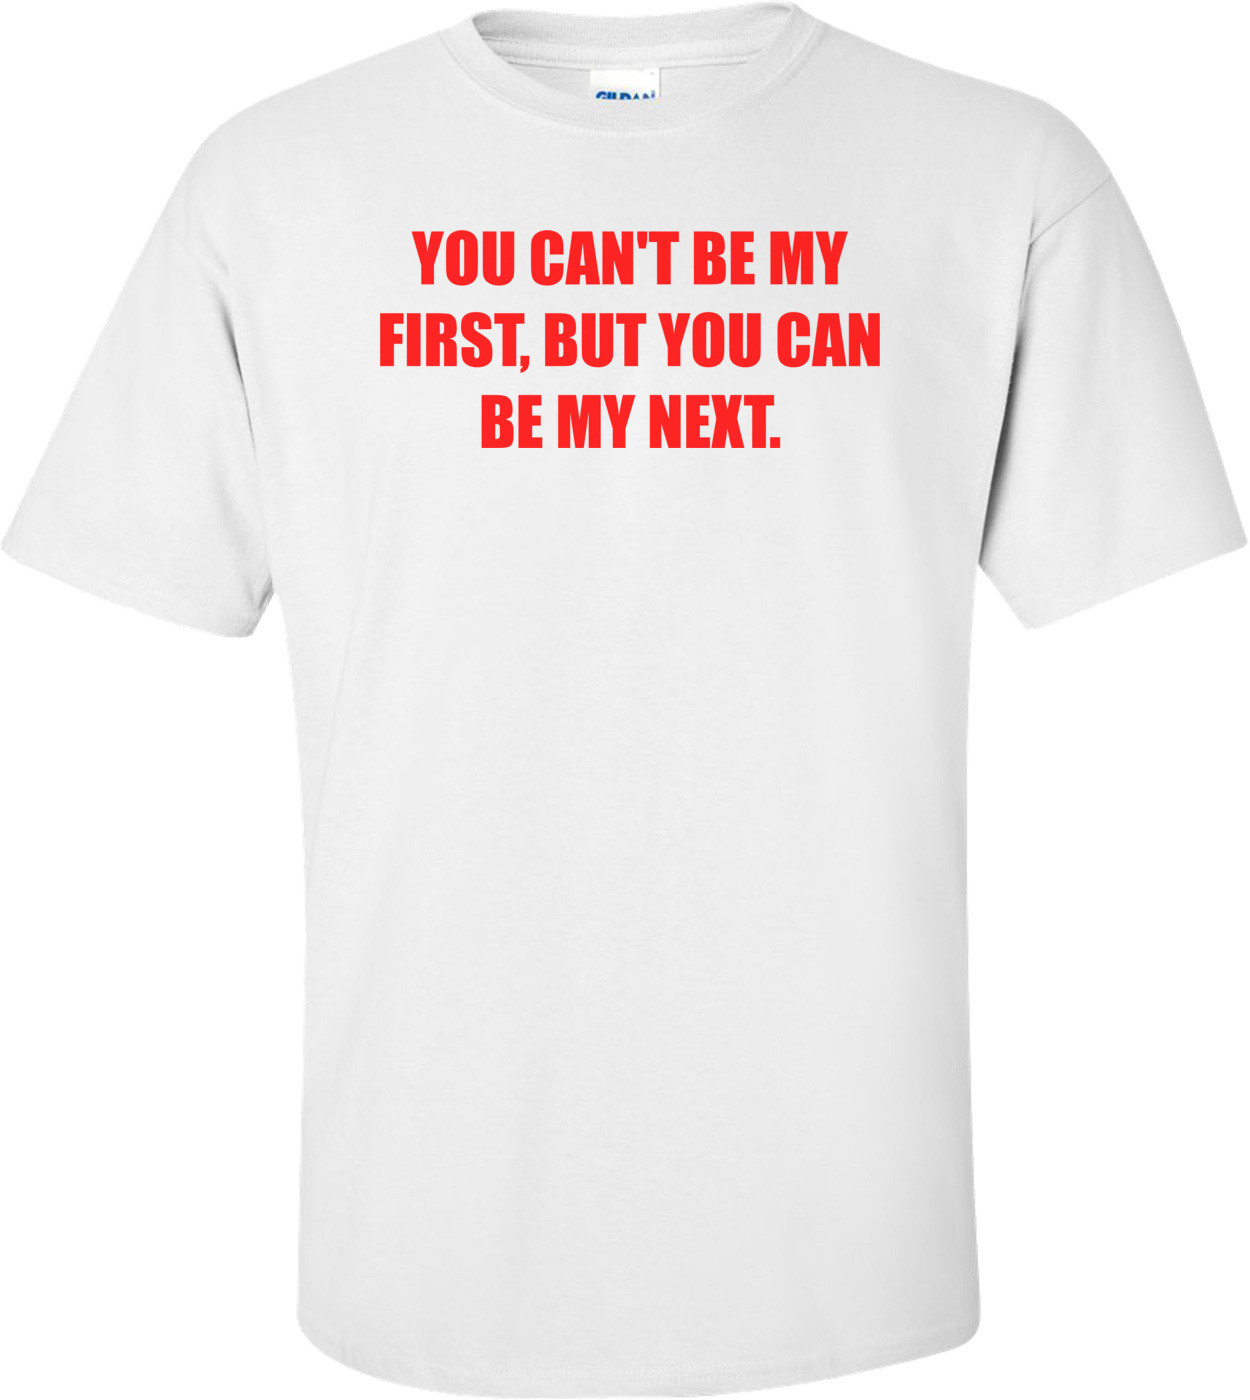 YOU CAN'T BE MY FIRST, BUT YOU CAN BE MY NEXT. Shirt